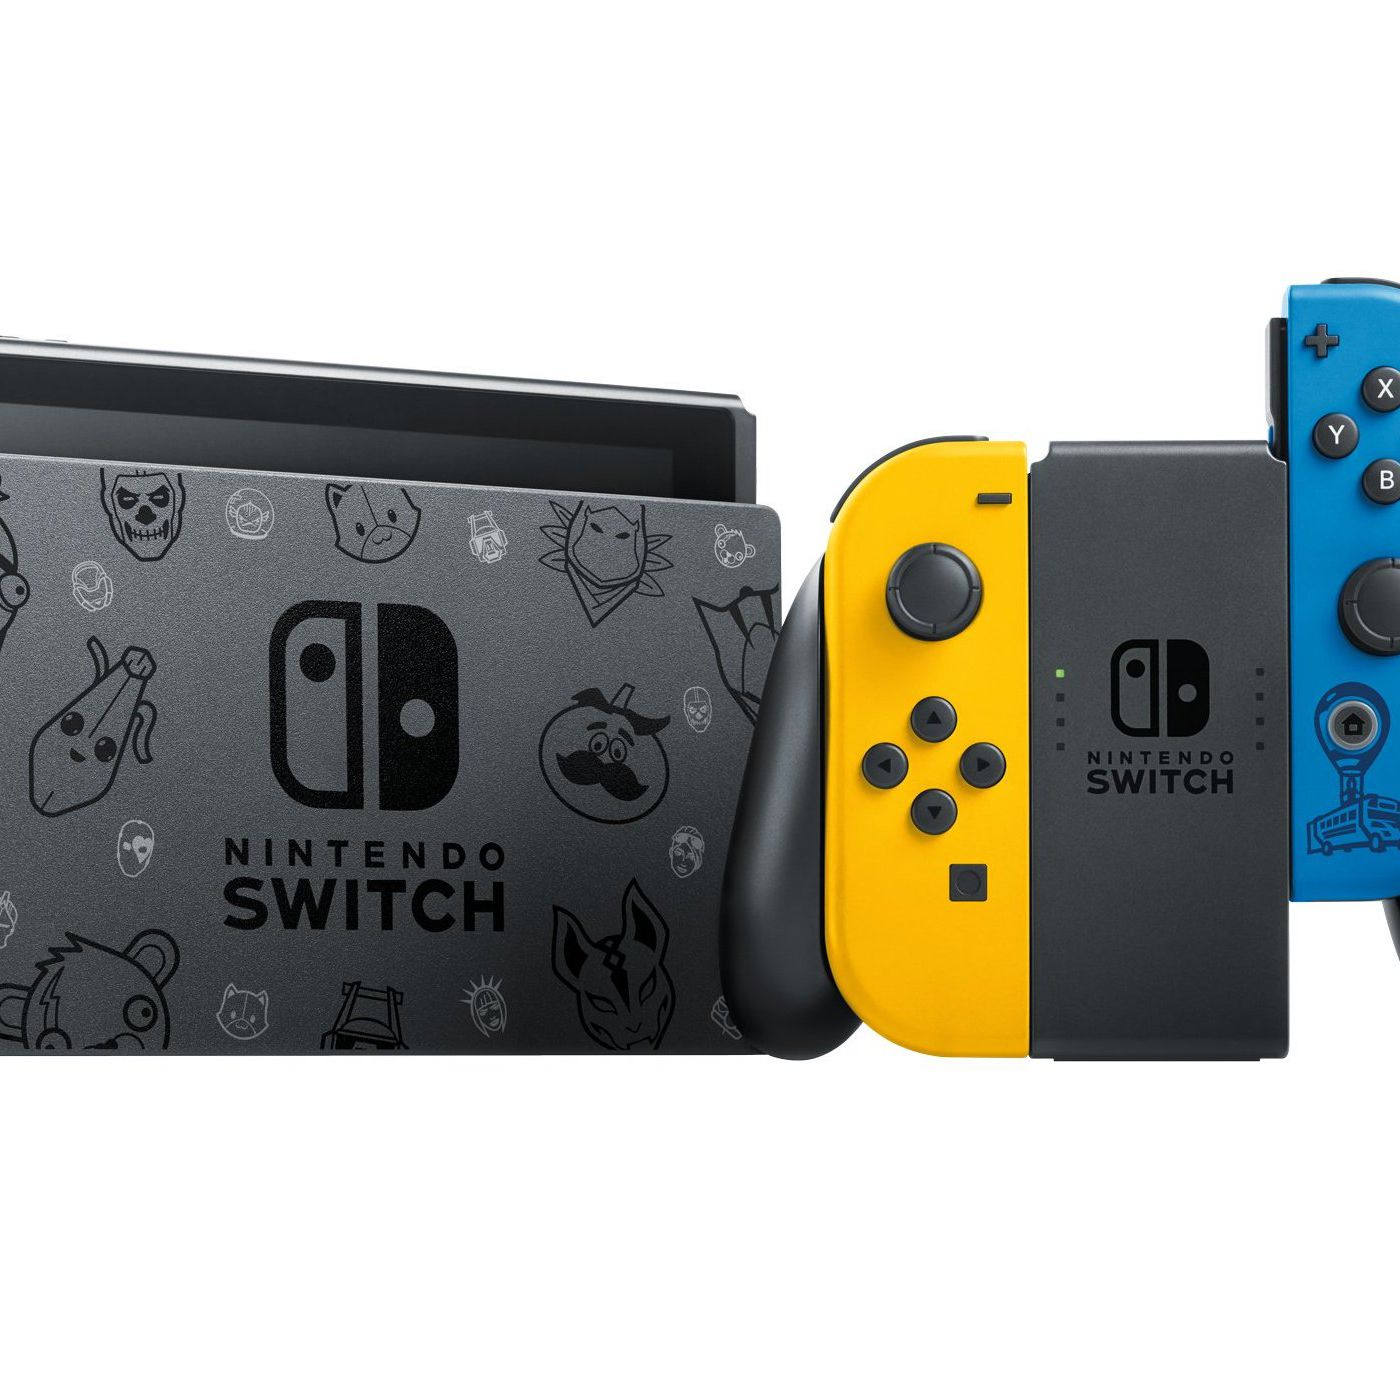 Fortnite Special Edition Nintendo Switch Announced For Europe The Verge